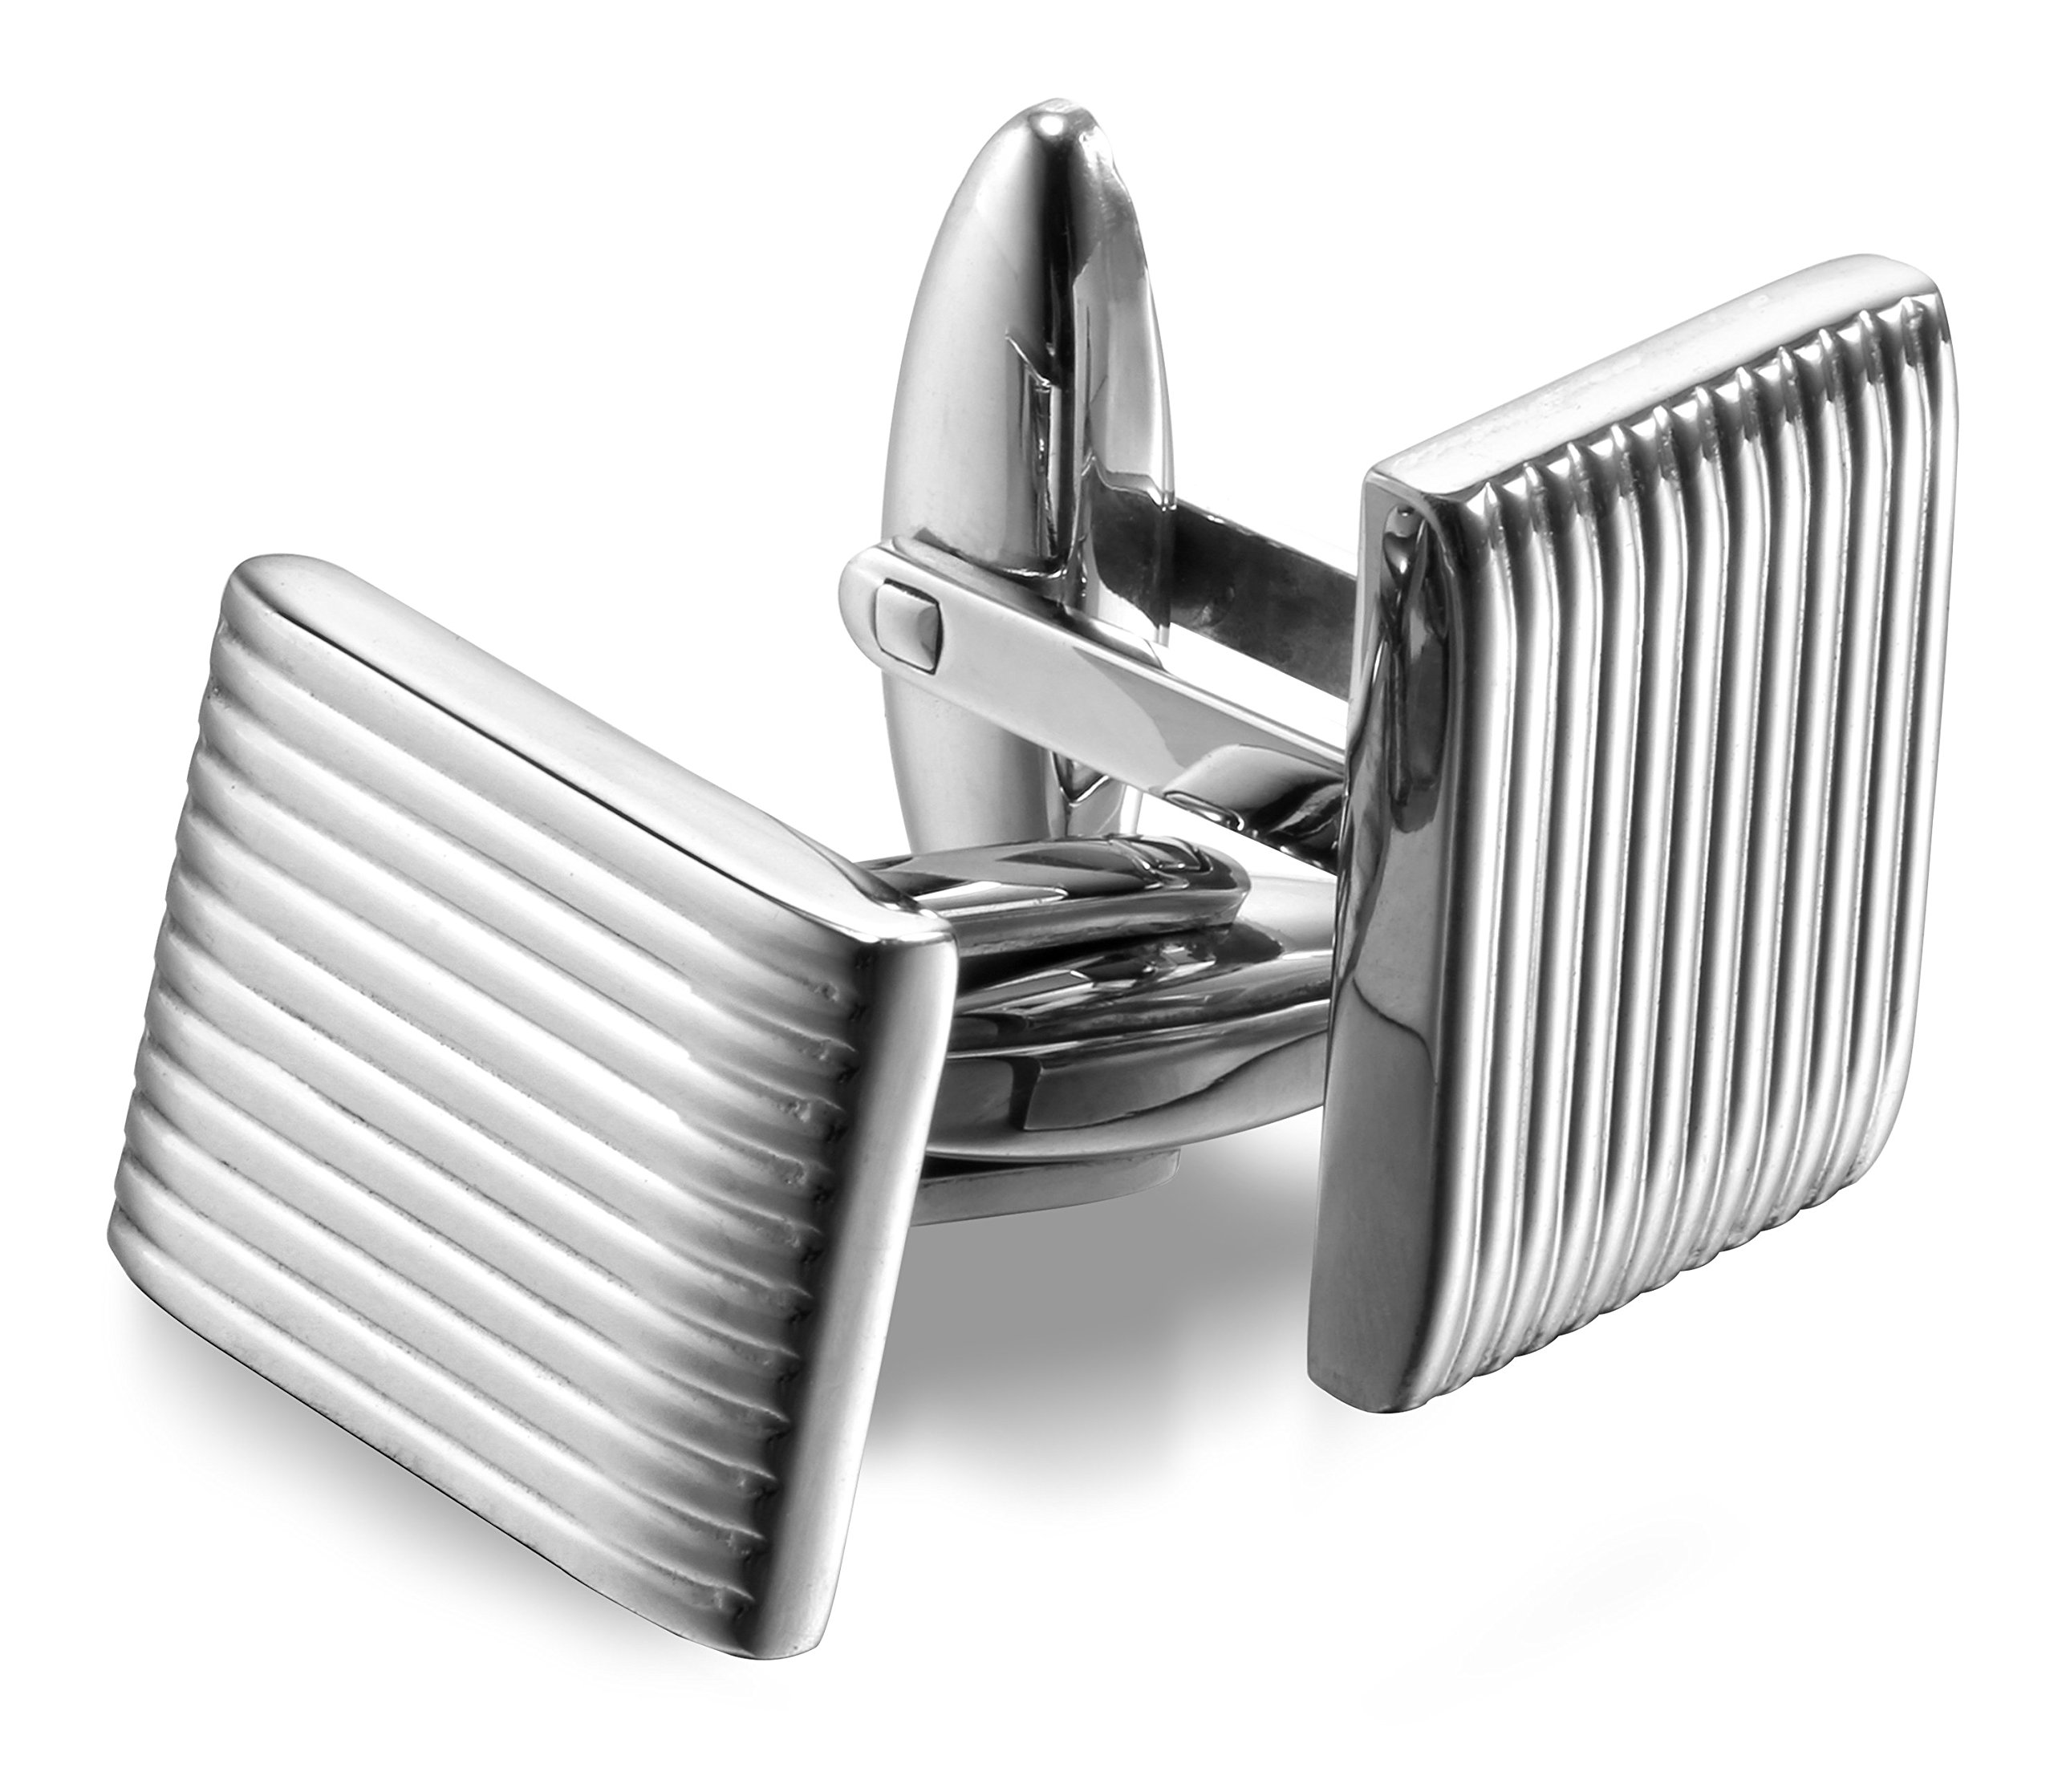 Men's High-Polished 316L Stainless Steel Cufflinks with Gift Box – Premium Quality (Steel)